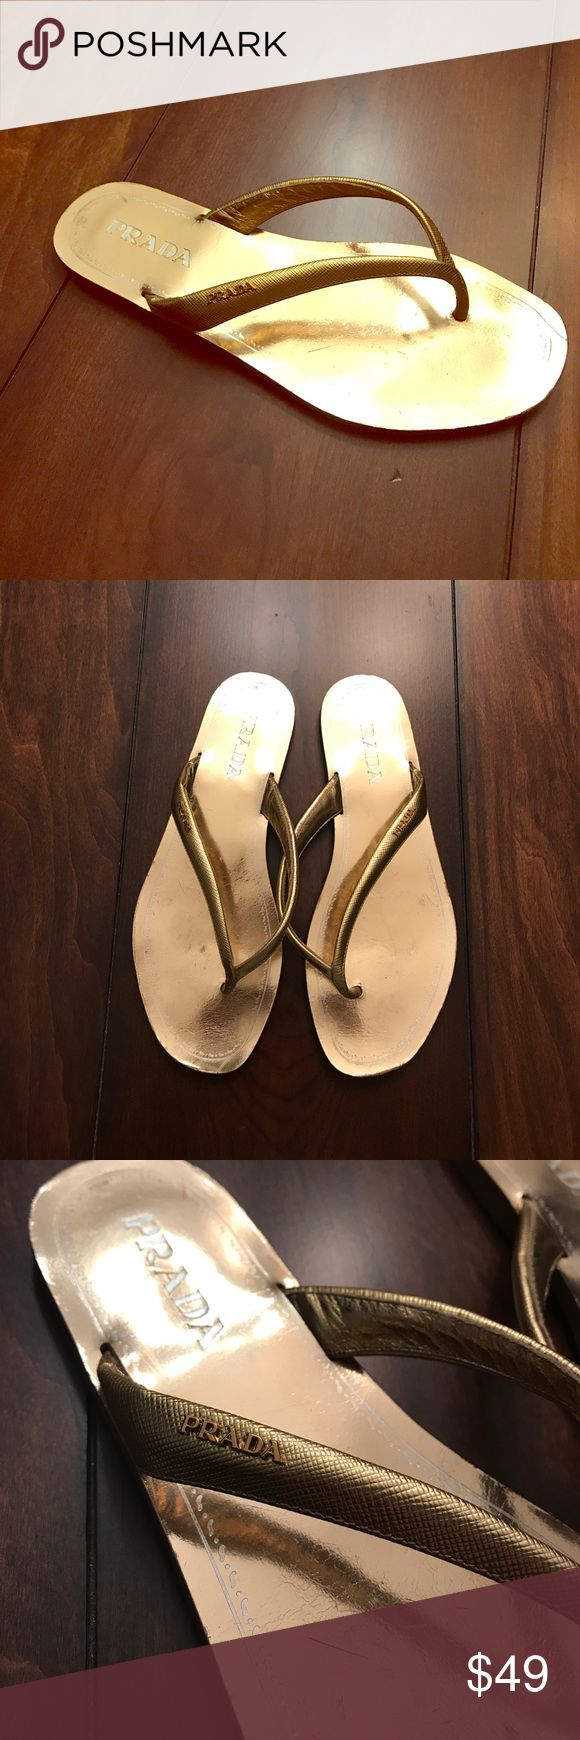 Prada flip flops authentic. great condition Prada Shoes Sandals